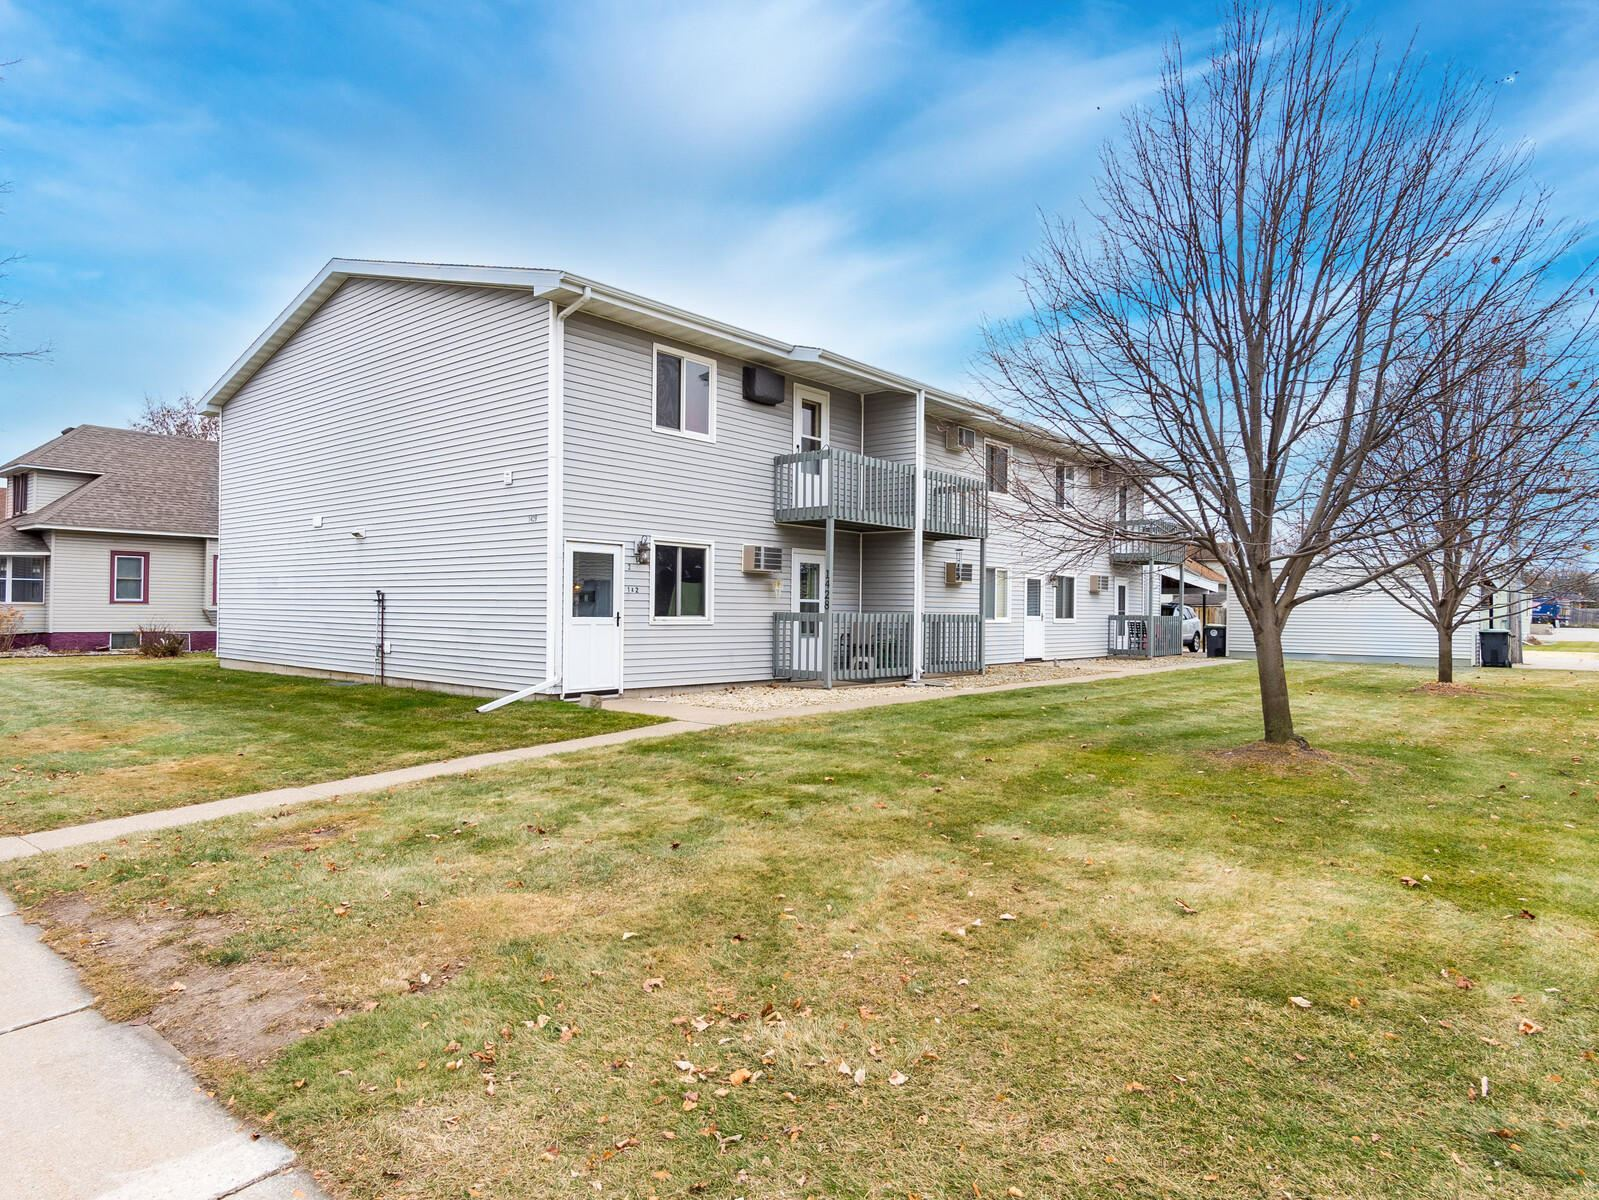 1428 Redfield St #4, La Crosse, WI 54601 - MLS#: 1720957